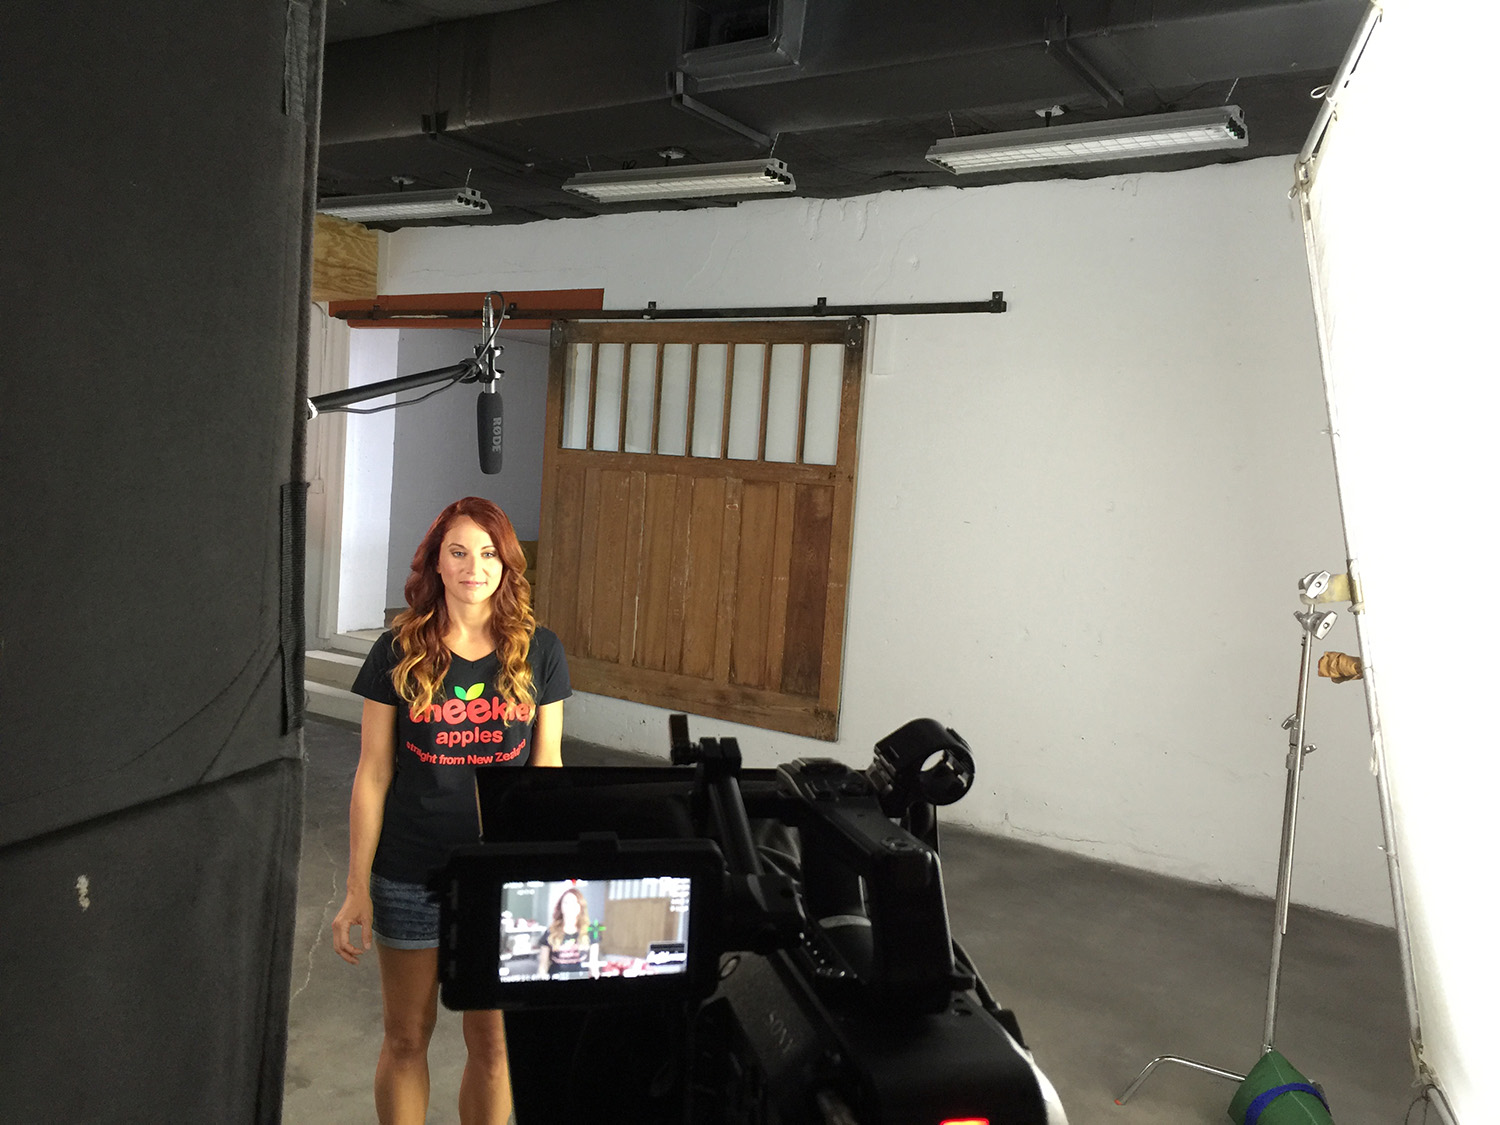 Using the features of the studio for a background for a commercial.